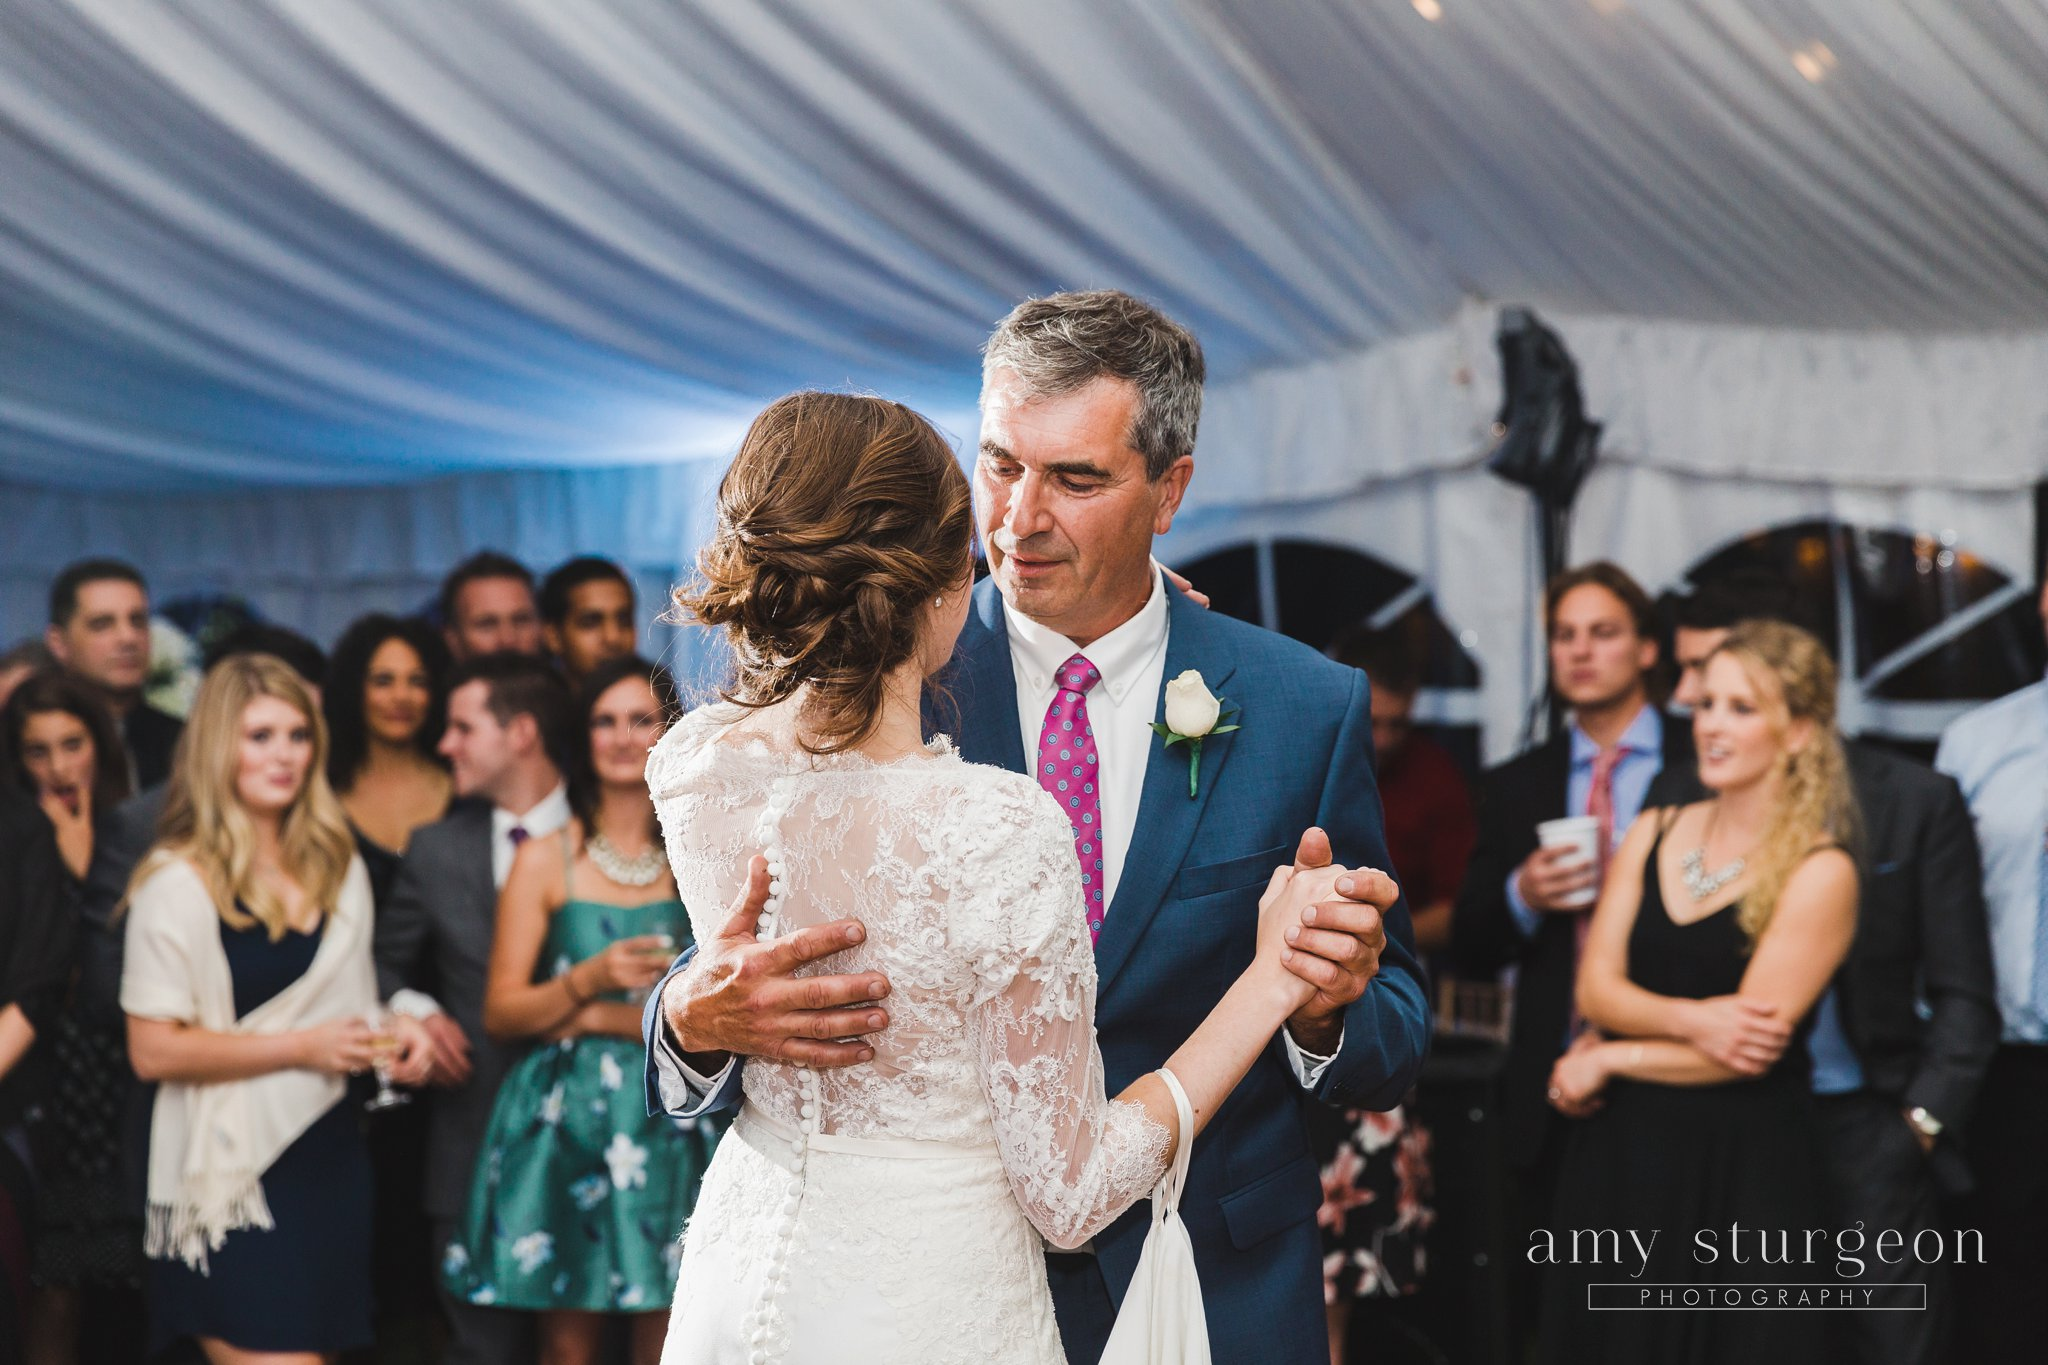 Everyone watched as the bride and her father had their first parent dance at the alpaca farm wedding